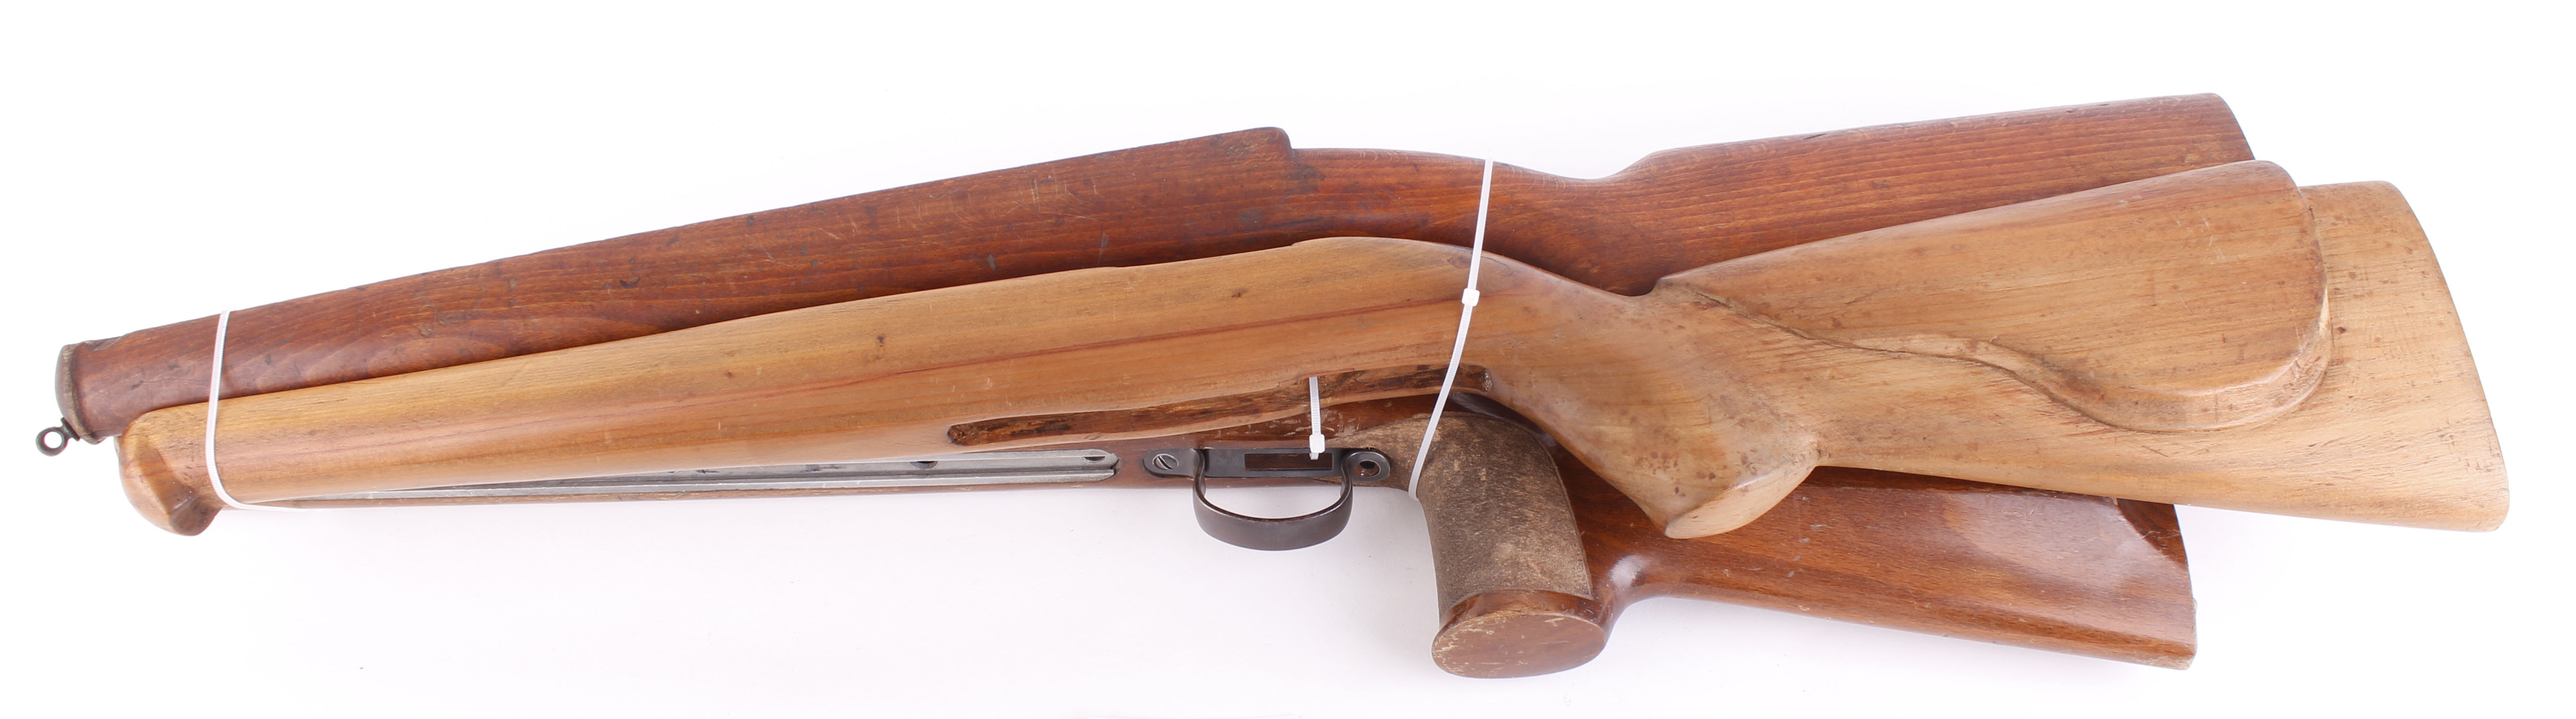 Lot 35 - Three rifle stocks: Anschutz target, Mauser pre-war and full bore (3)